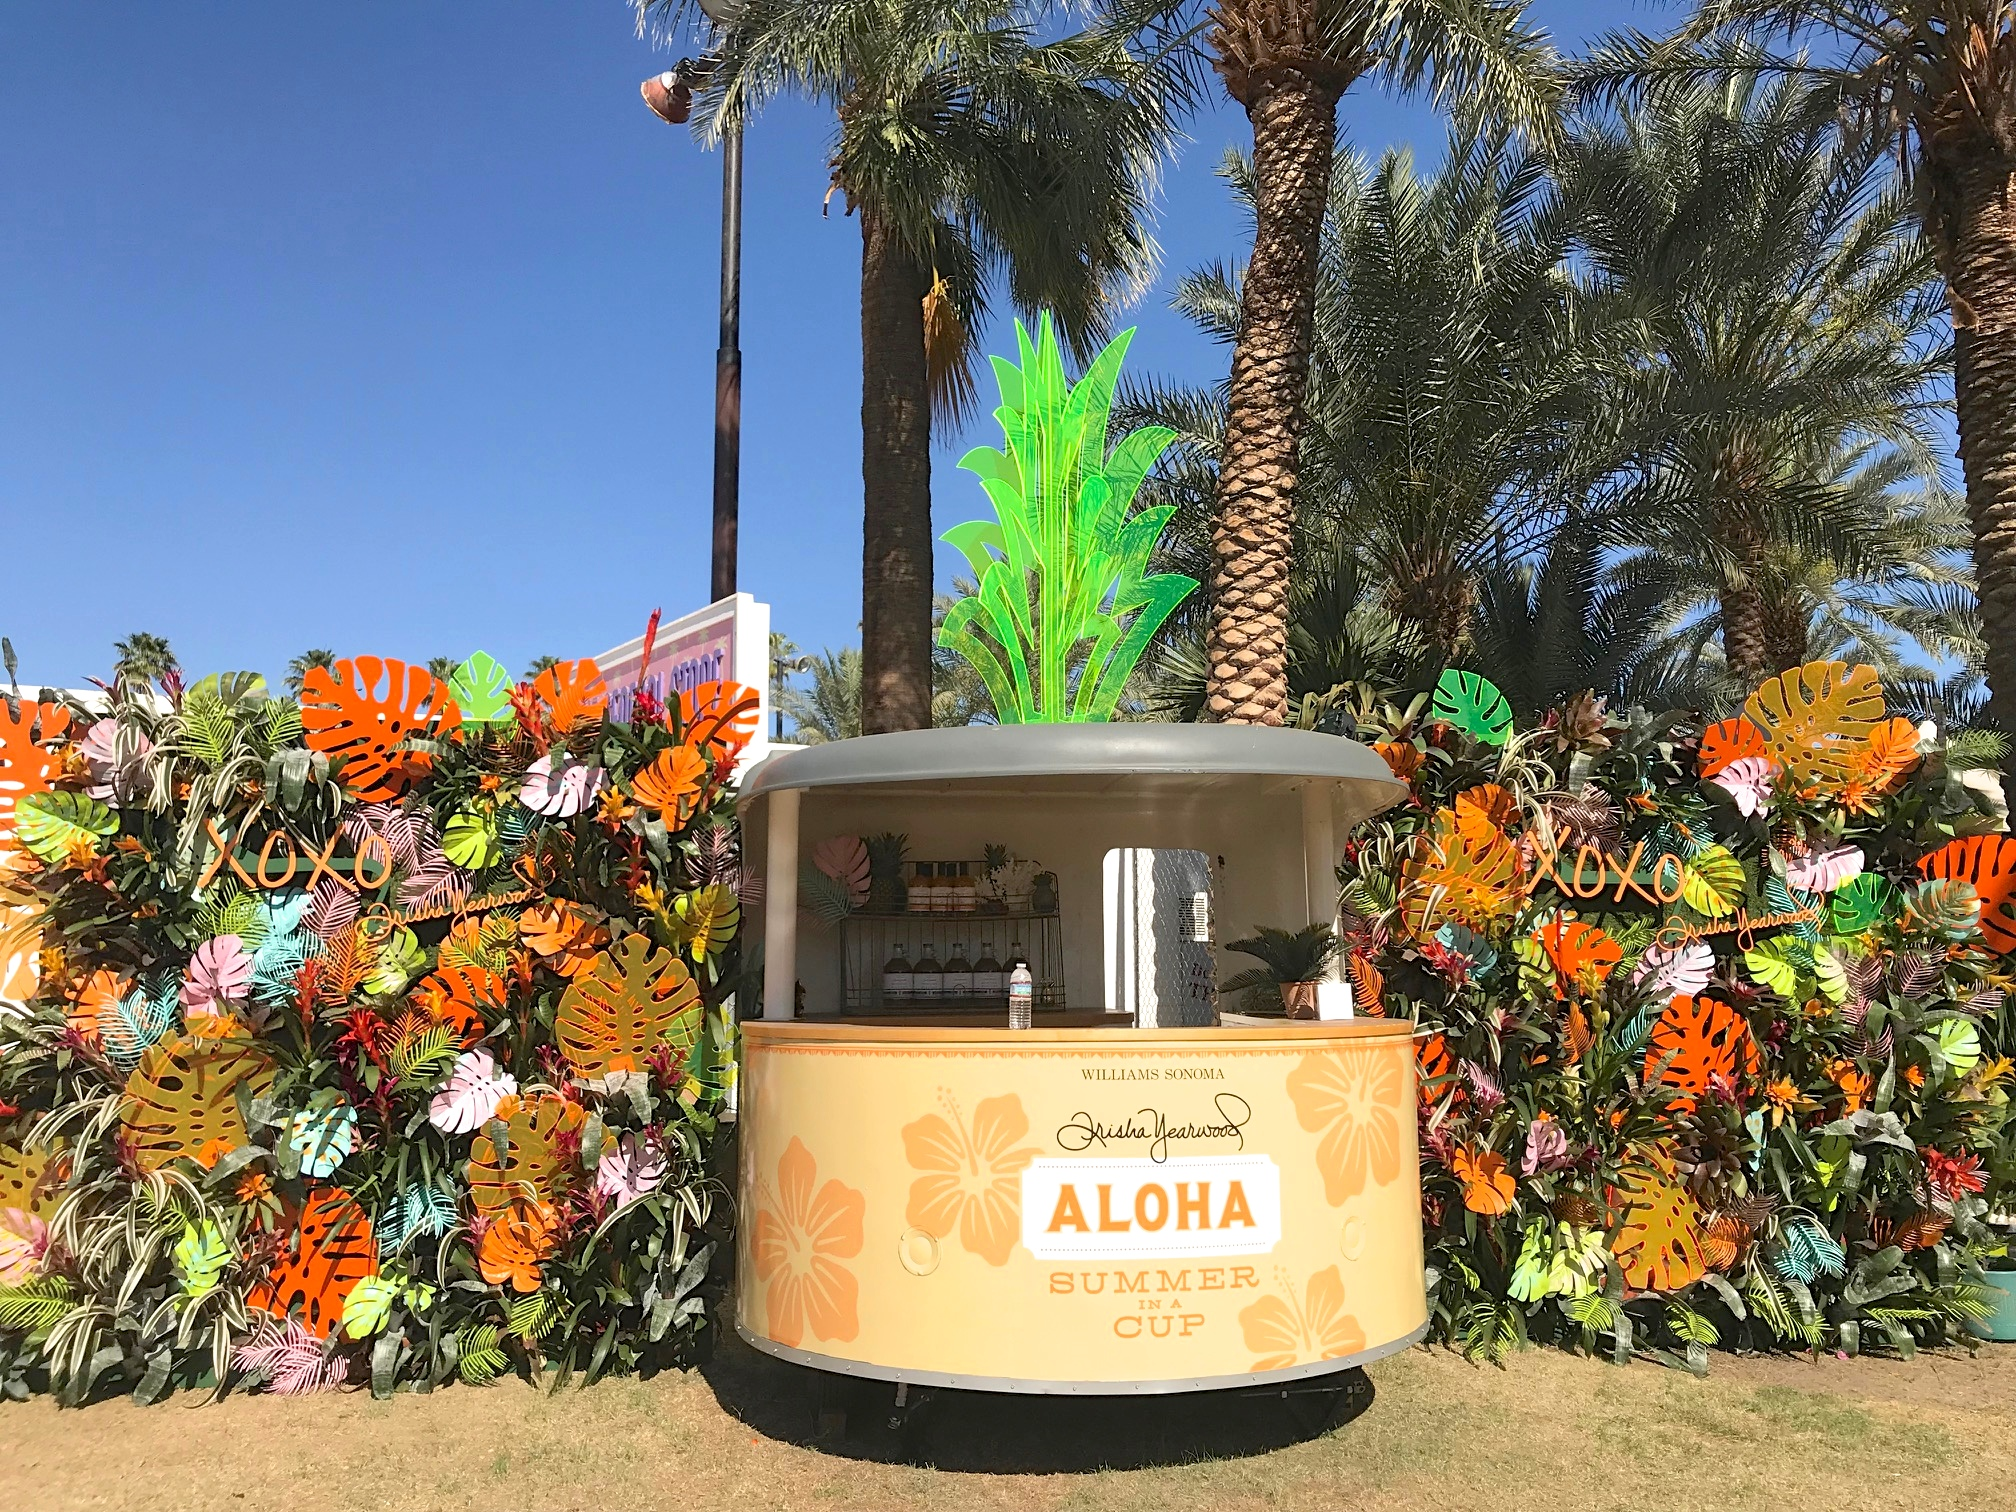 Our roll-o-vend vintage vending trailer can be custom branded with logo wraps + styling and event build outs to fit all of your experiential marketing & production needs!